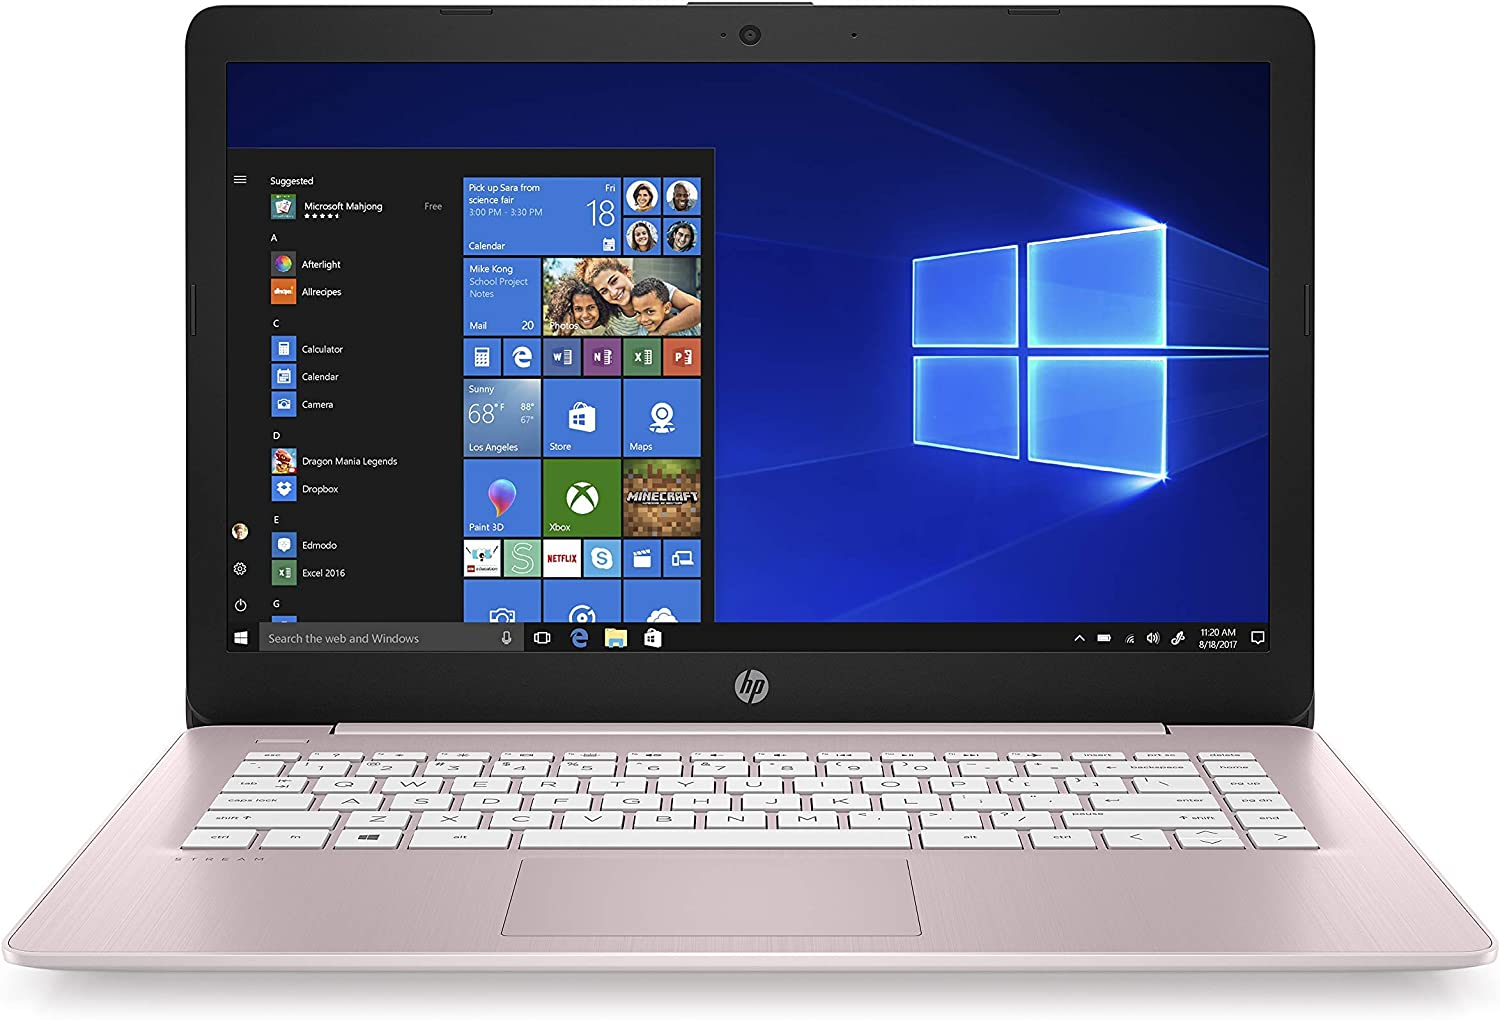 HP Stream 14-inch Laptop, AMD Dual-Core A4-9120E Processor, 4 GB SDRAM, 32 GB eMMC, Windows 10 Home in S Mode with Office 365 Personal for One Year (14-ds0040nr, Rose Pink) (Renewed)